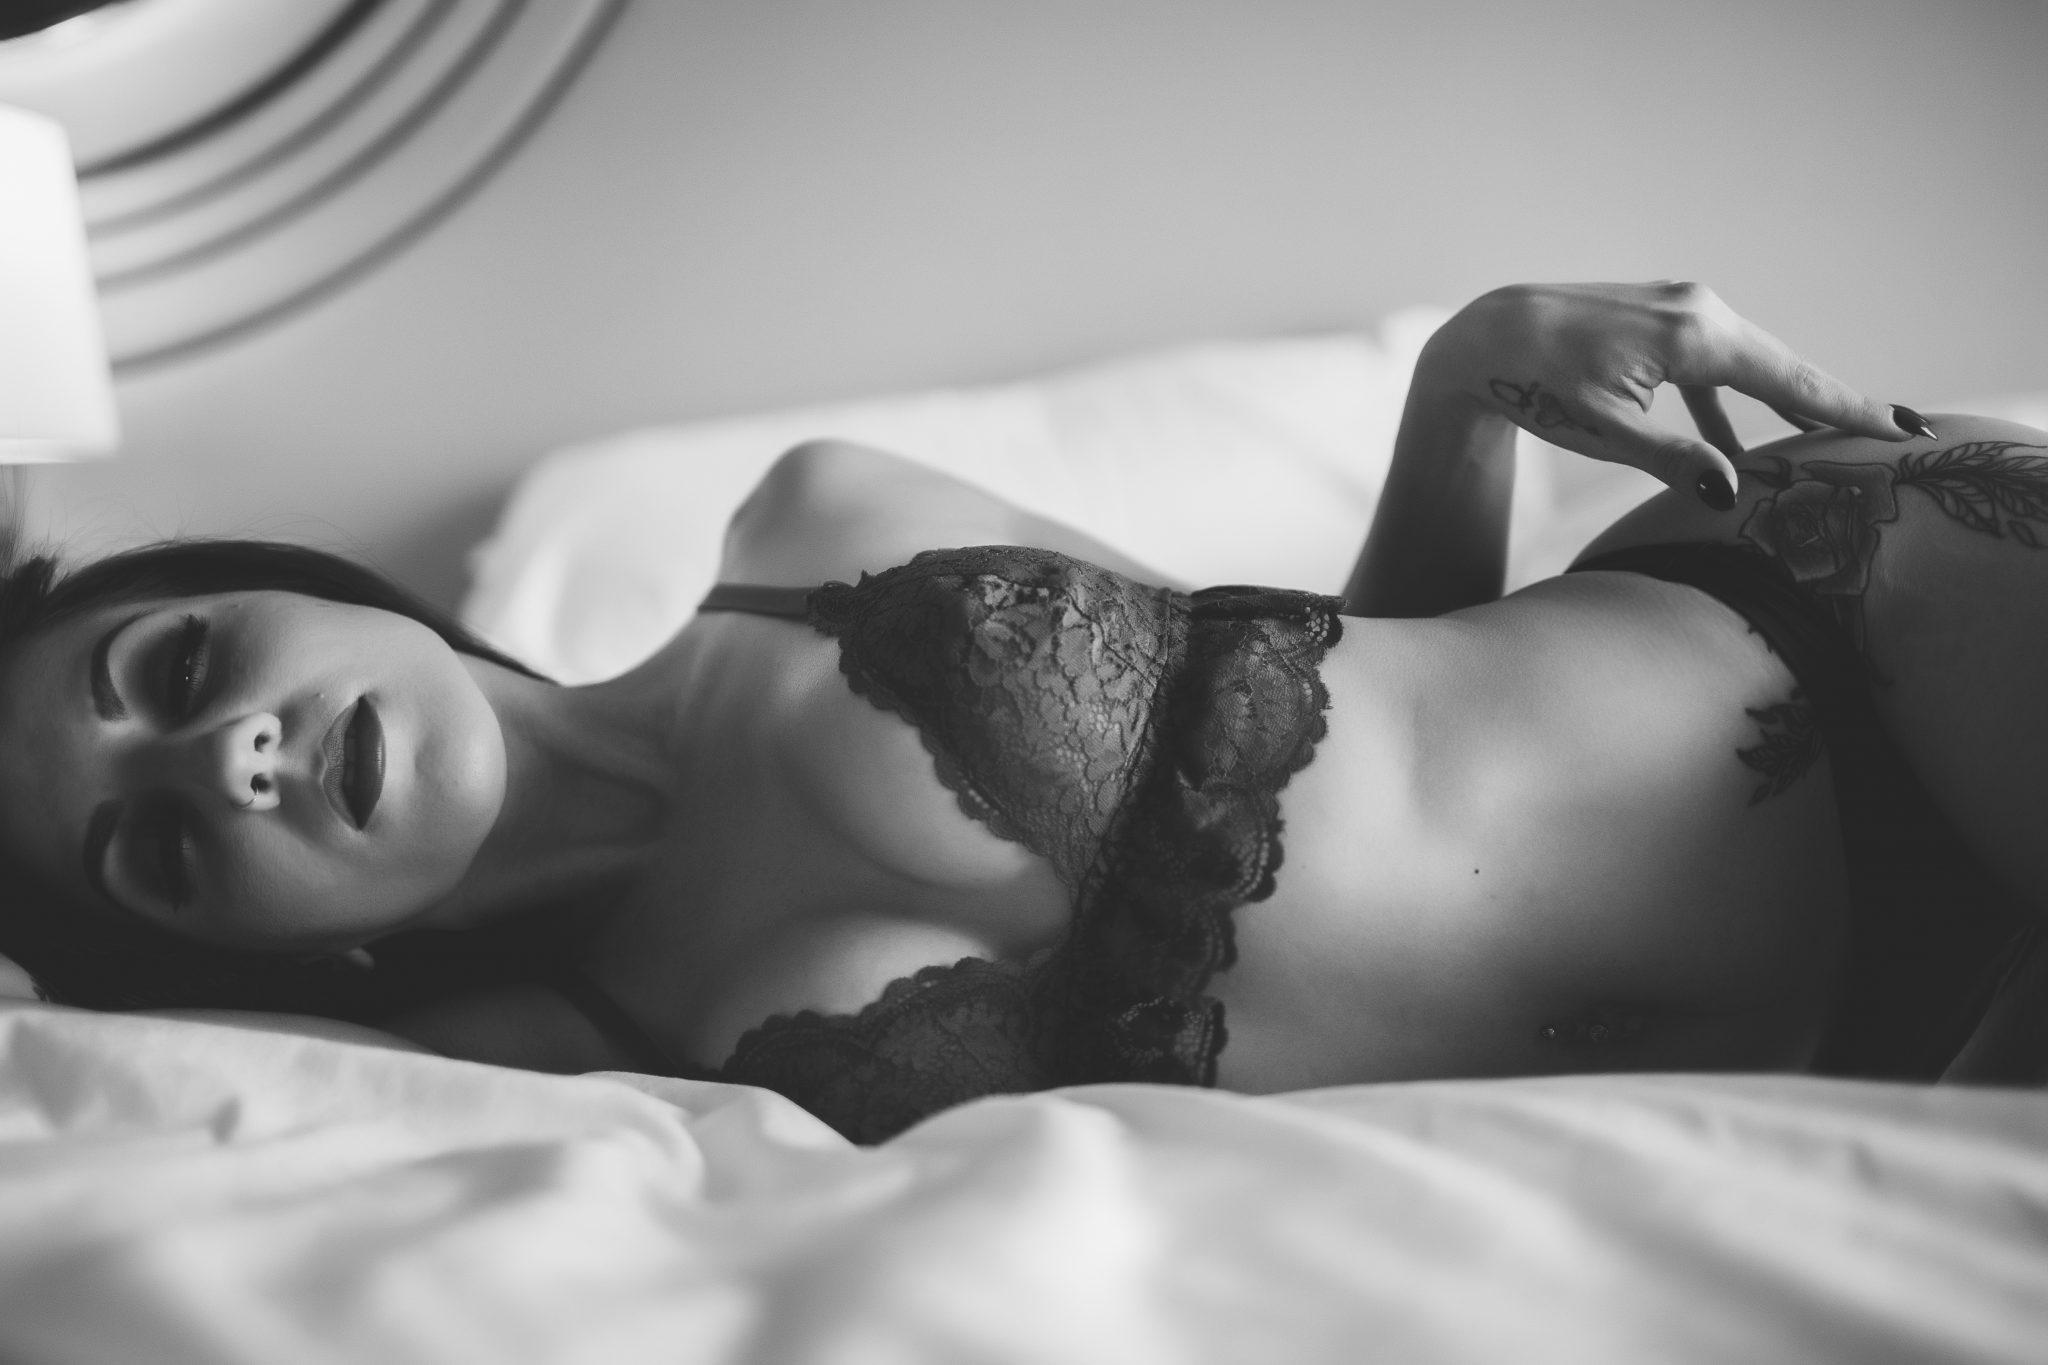 Tattooed model wearing lingerie and laying on bed